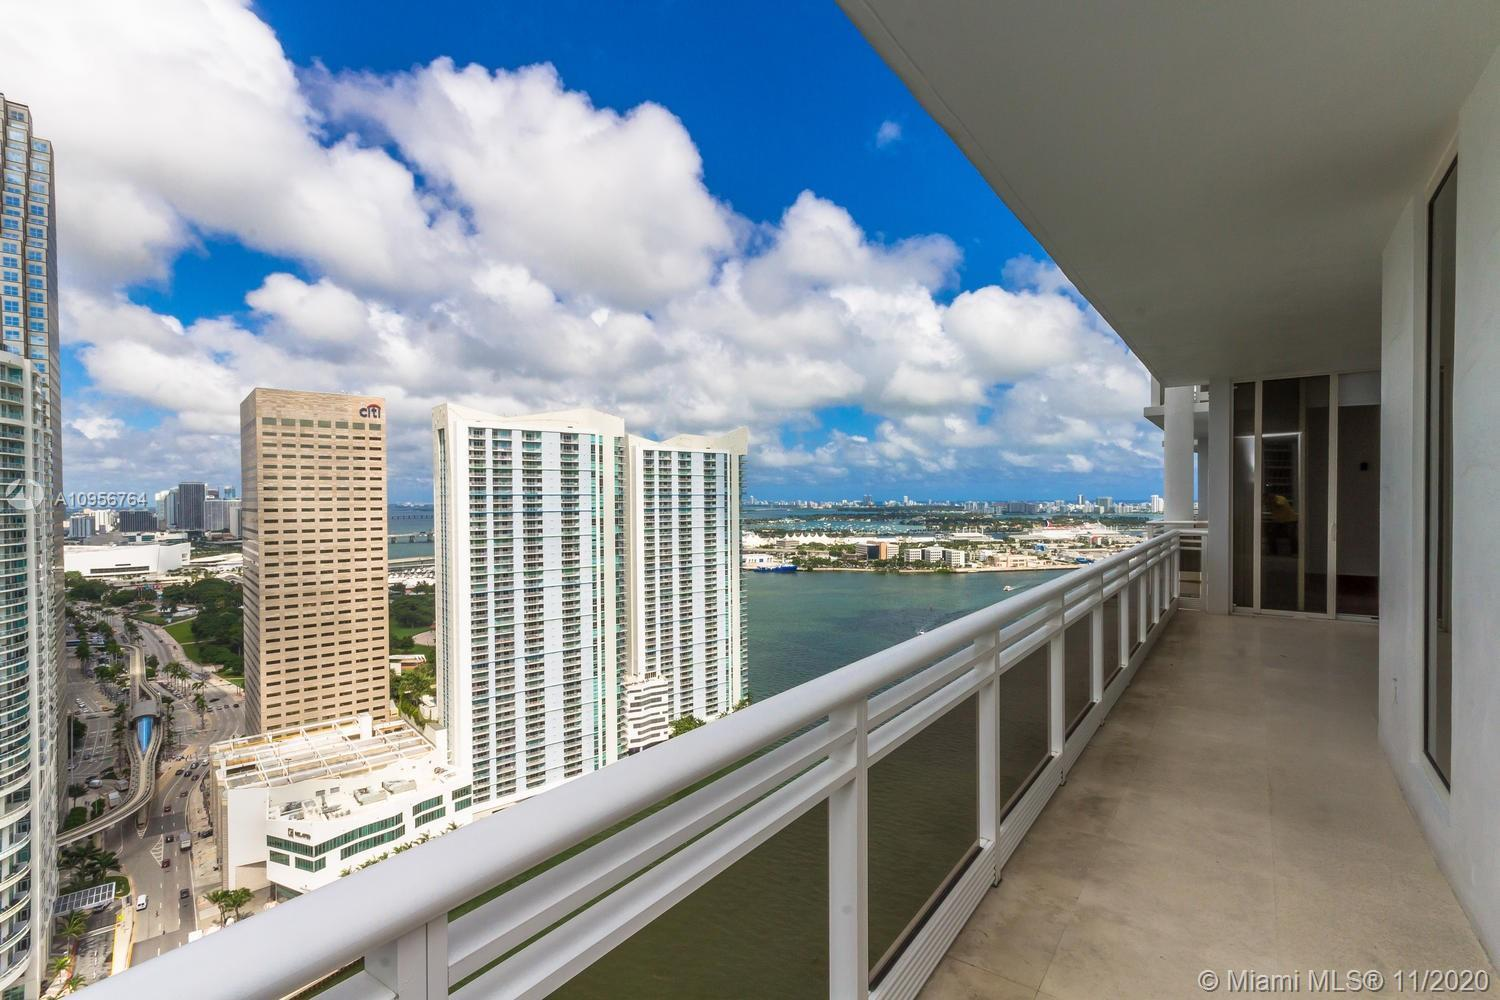 MAGNIFICENT 2 BED / 2.5 BATH ON THE 36TH FLOOR. HIGH CEILINGS & FLOOR-TO-CEILING WINDOWS WITH VIEWS